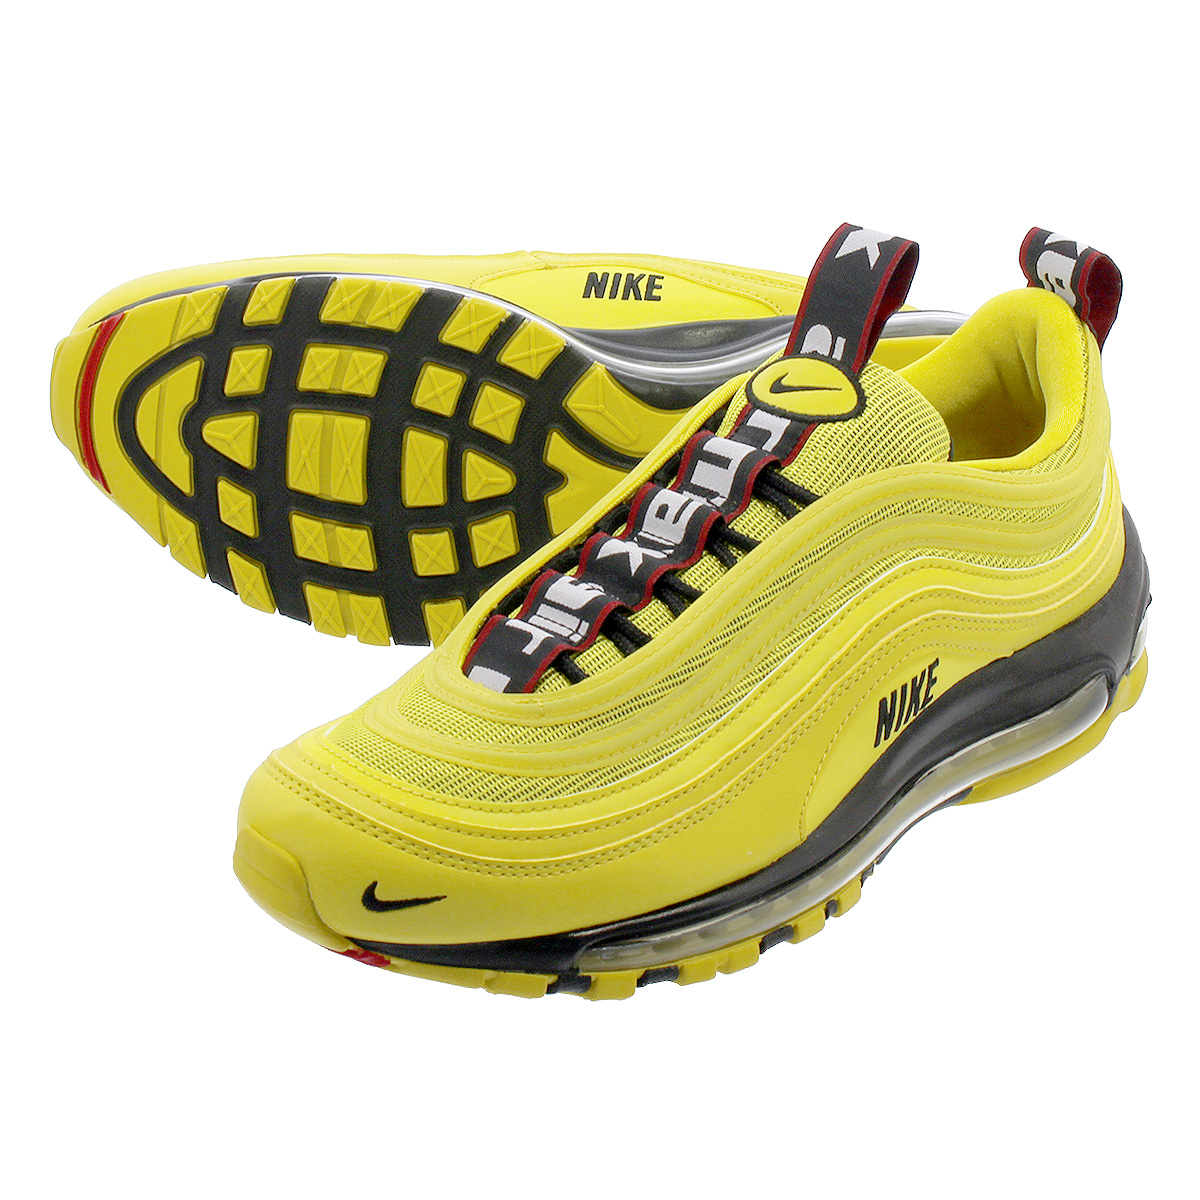 NIKE AIR MAX 97 ナイキ エア マックス 97 BRIGHT CITRON/BLACK/BLACK av8368-700